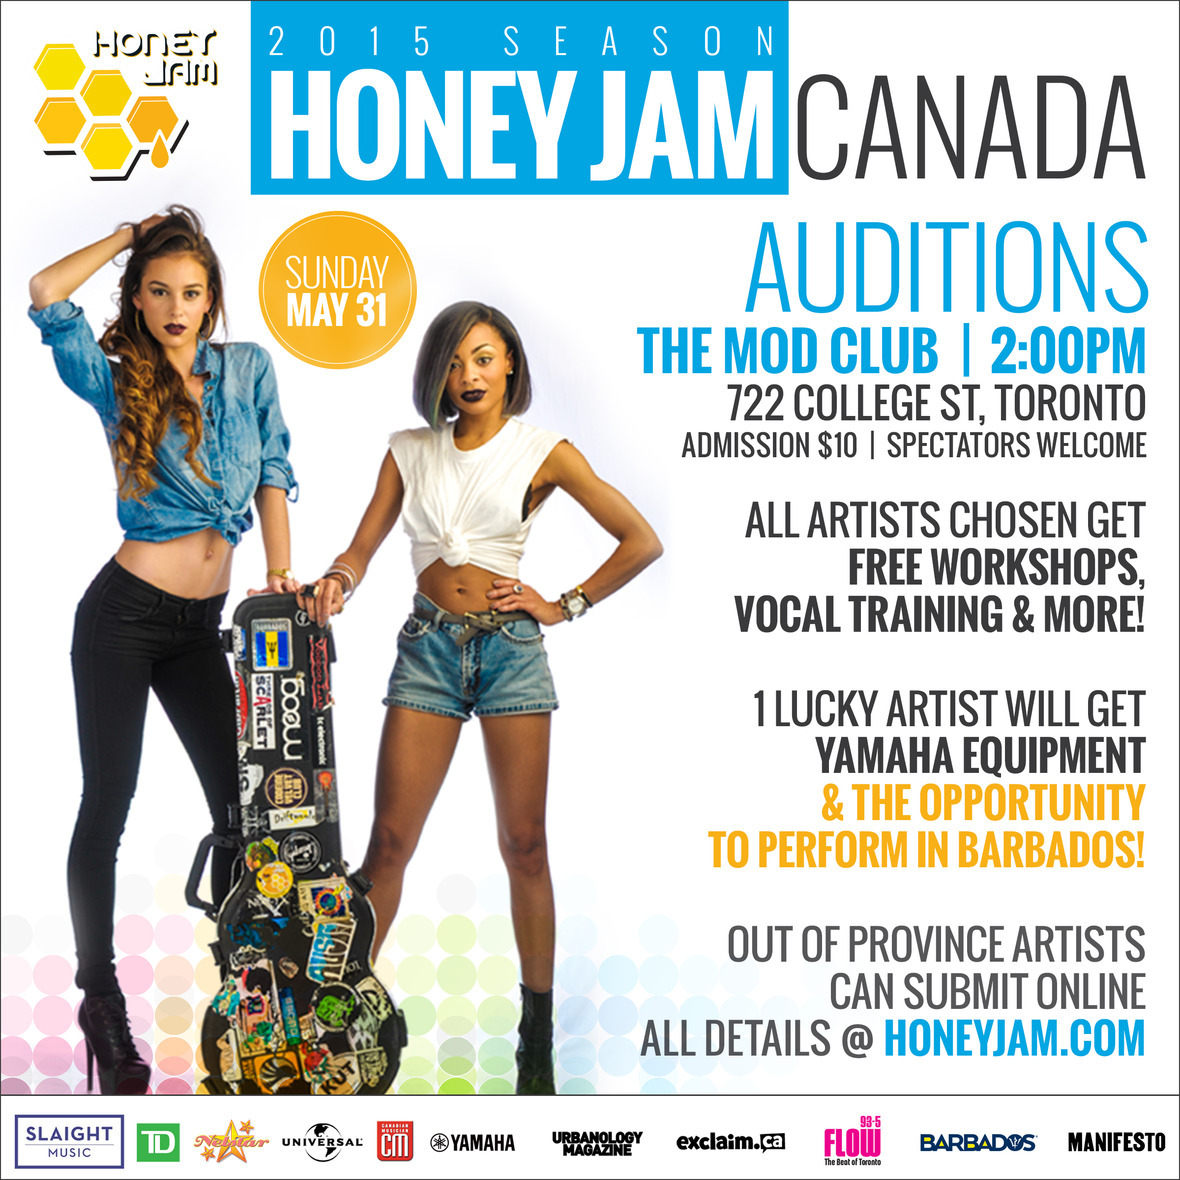 HoneyJam2015-auditions-sq-r2 1